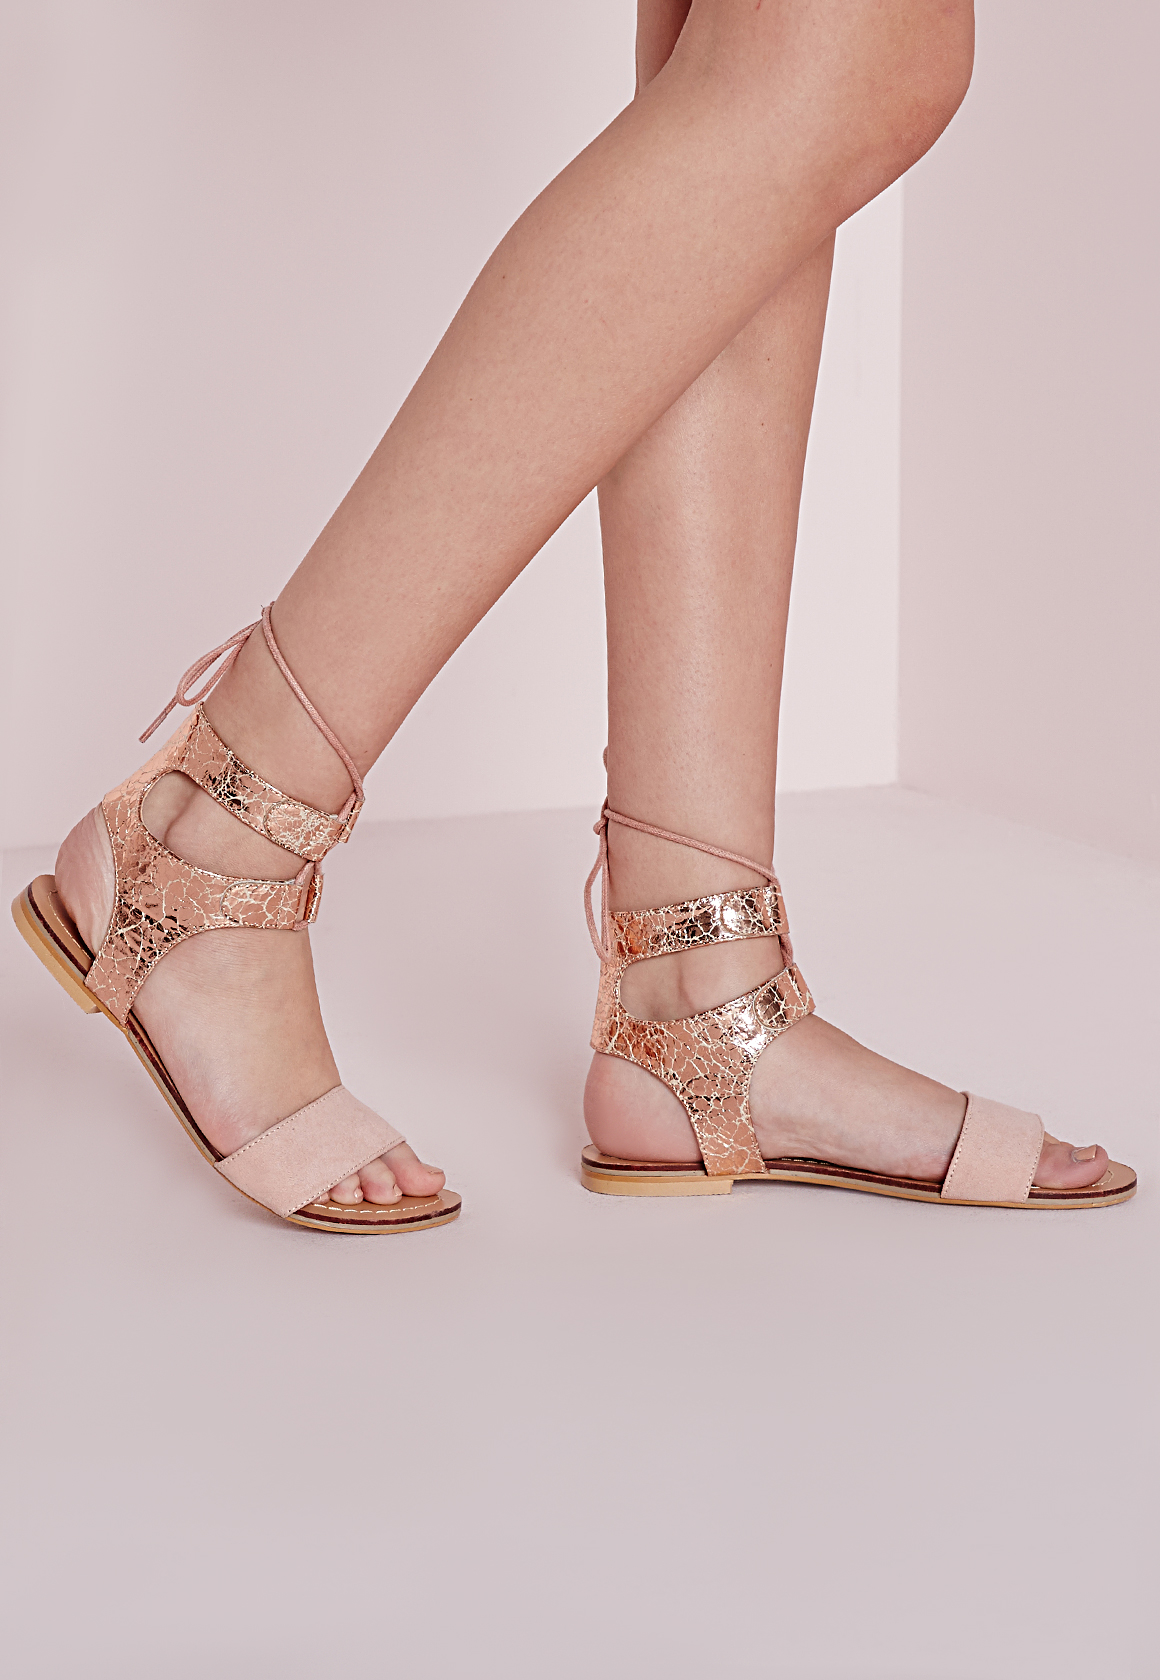 6f6dc717536 Lyst - Missguided Cracked Metallic Flat Sandals Rose Gold in Pink